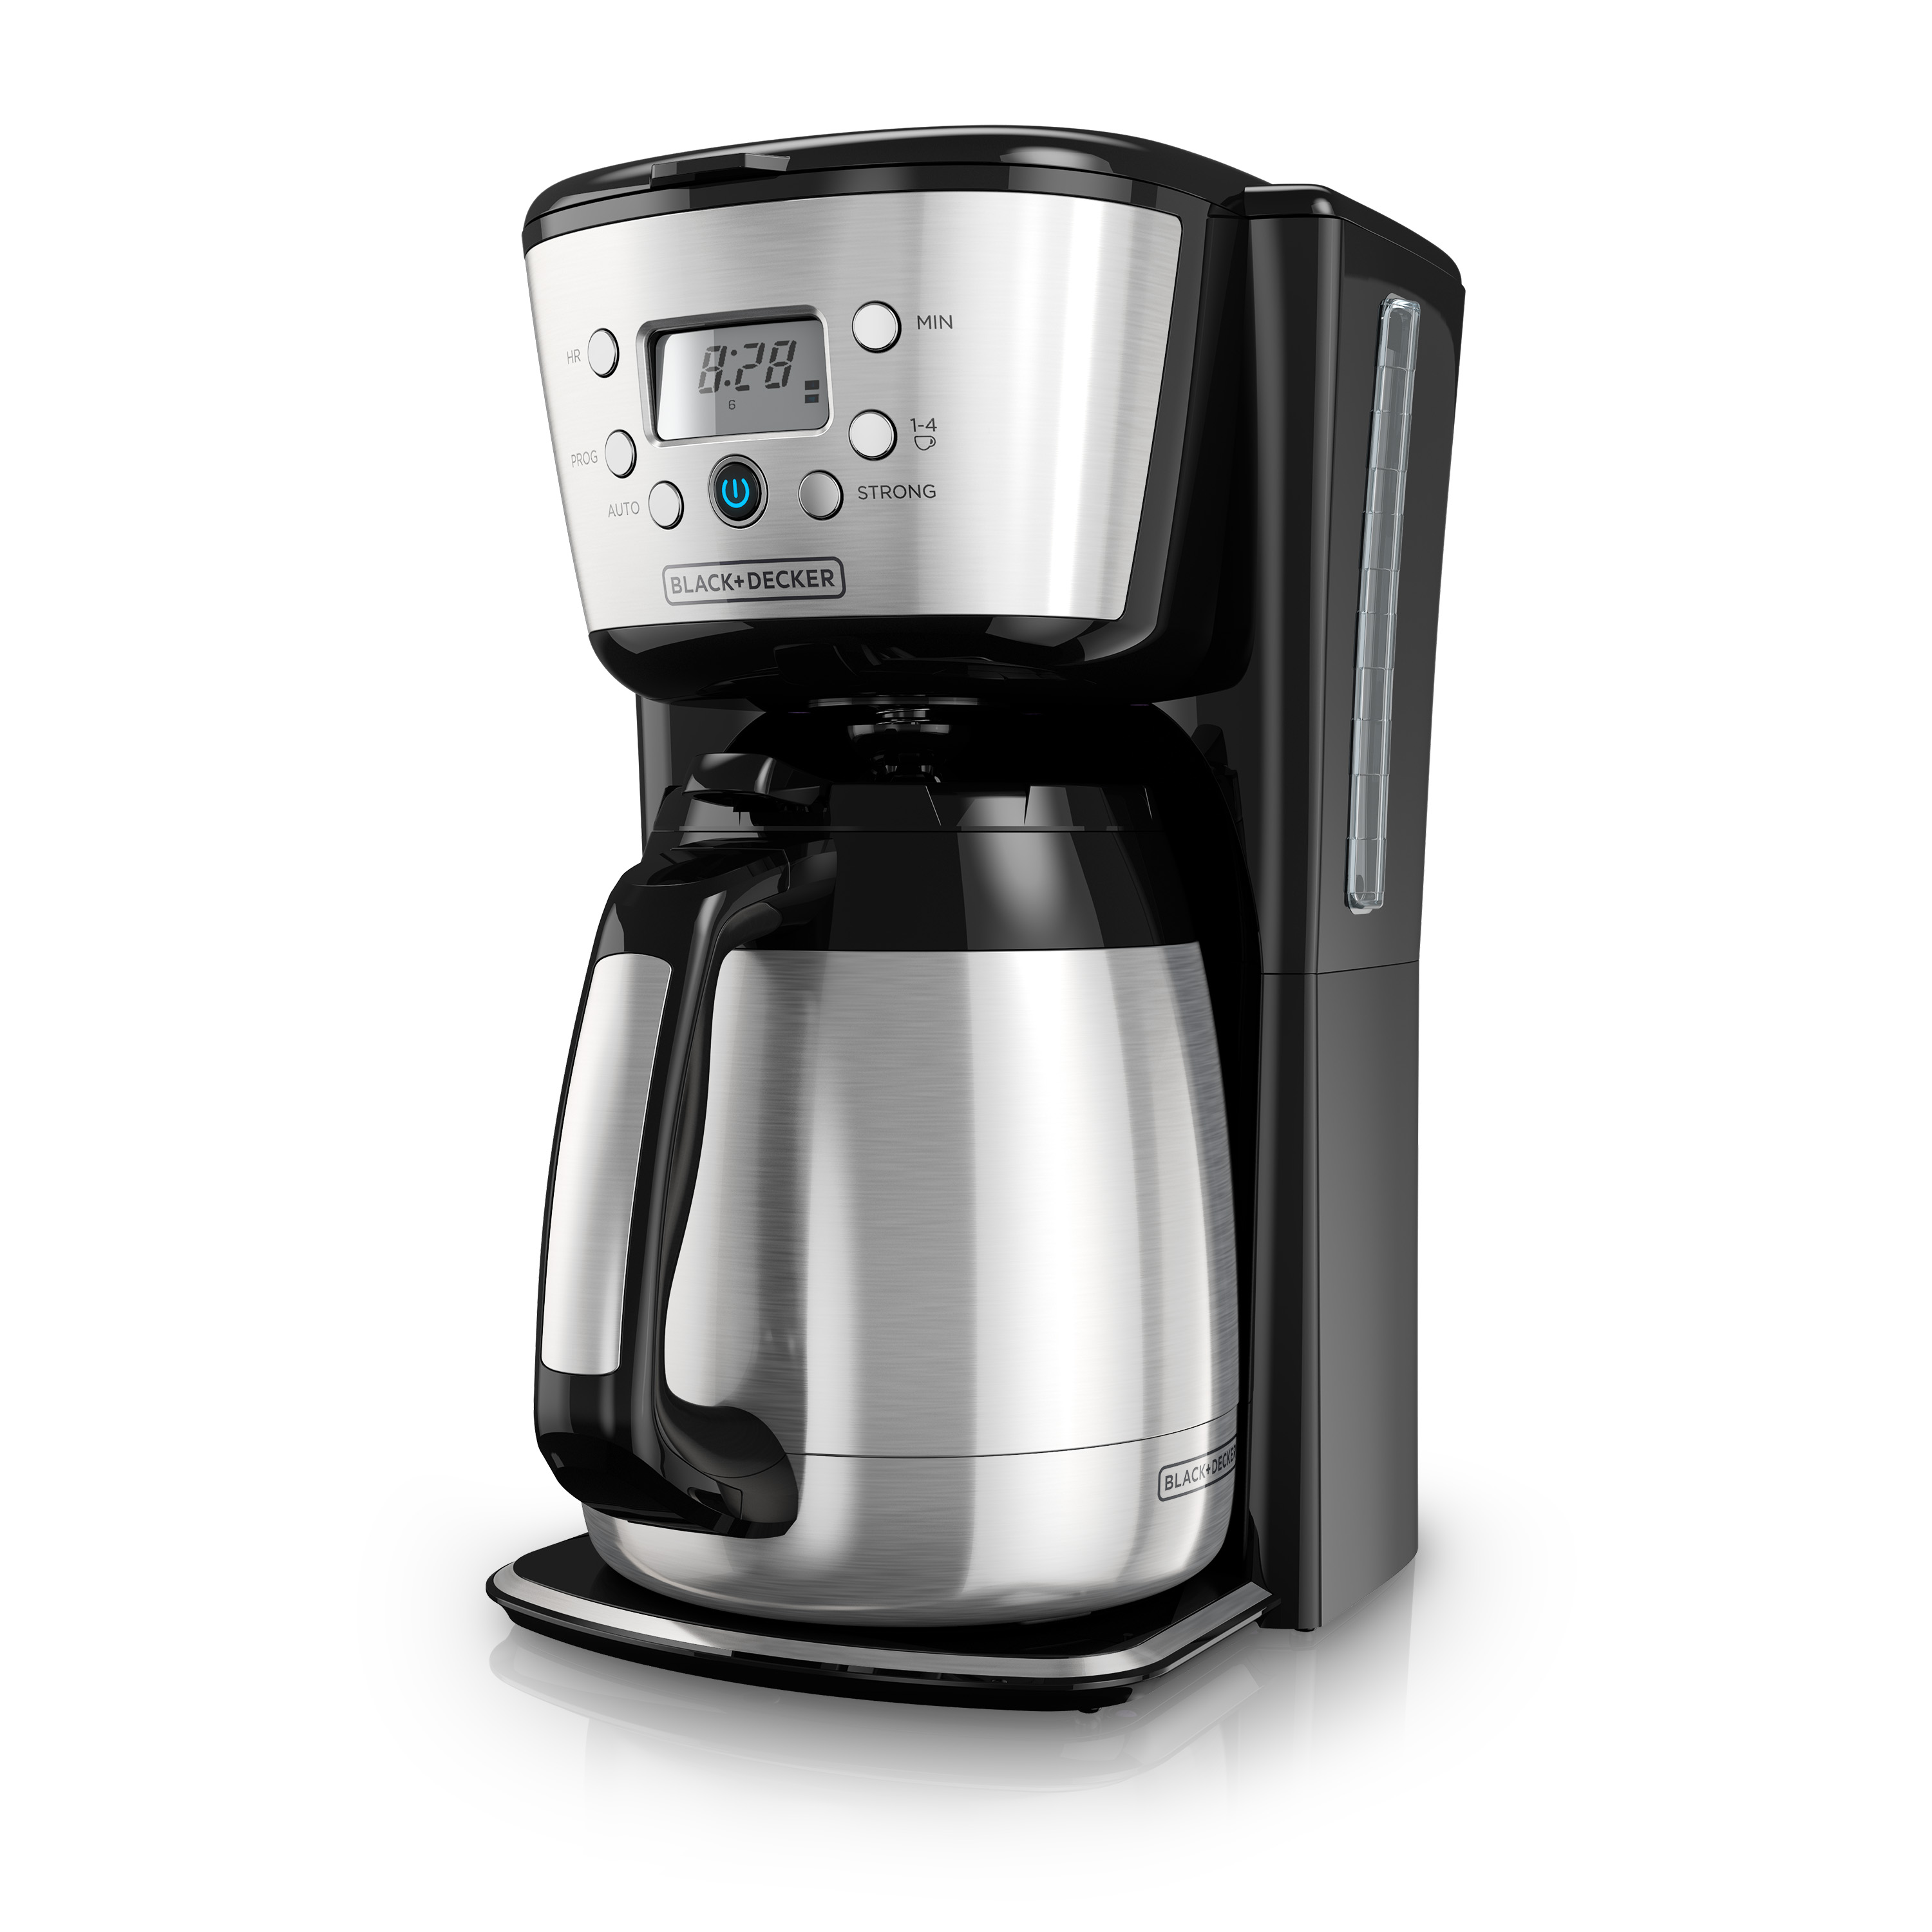 BLACK+DECKER 12-Cup Thermal Programmable Coffeemaker, Stainless Steel, CM2036S